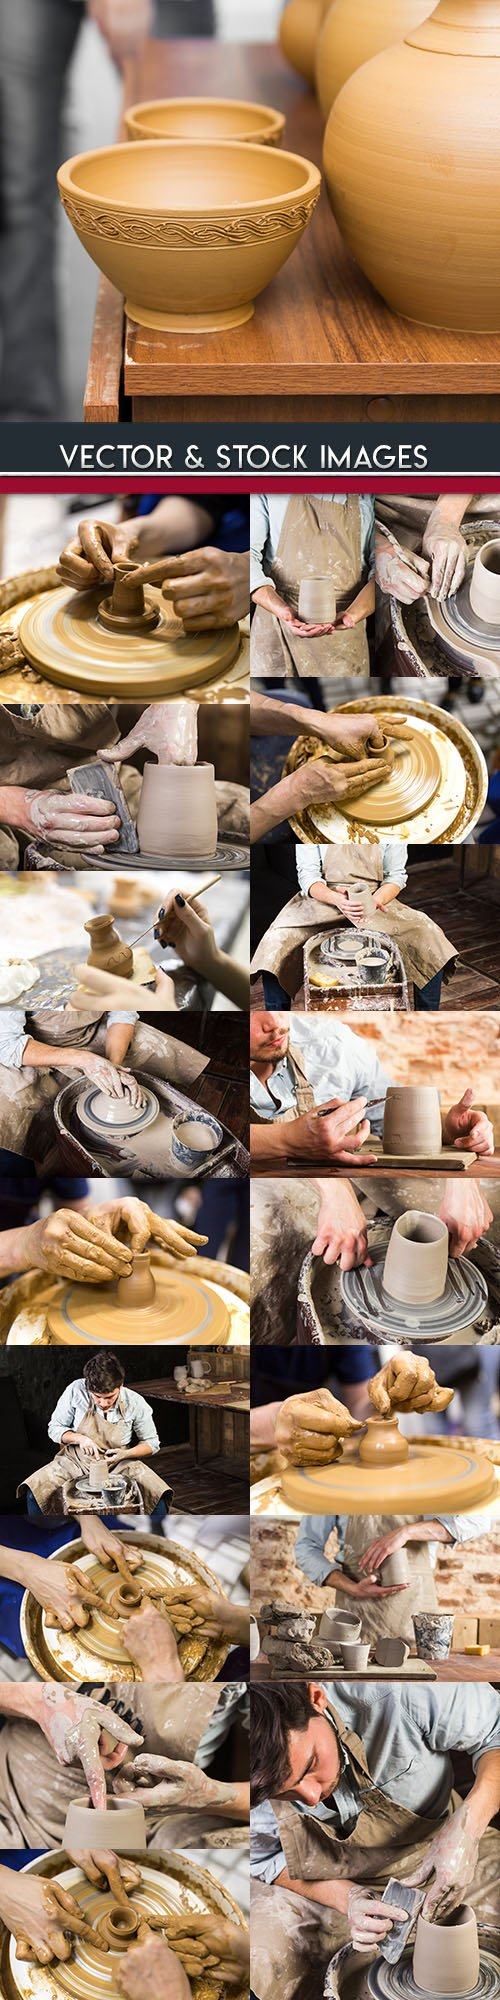 Pottery craft making ceramic pots and vases